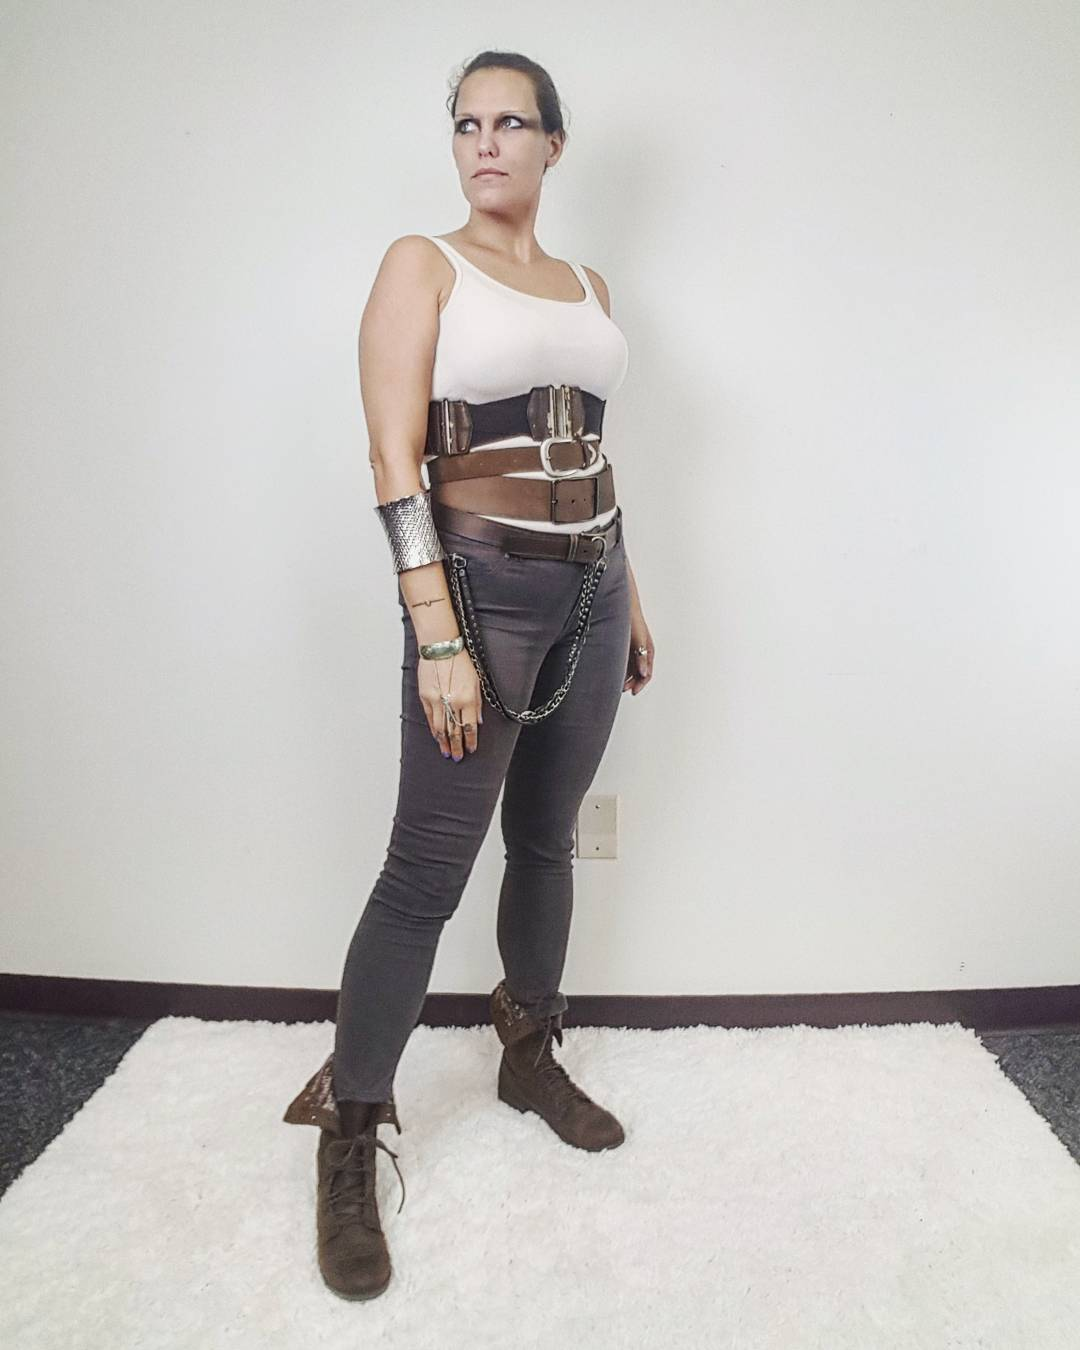 Thrift Store Cosplay Day 8 Imperator Furiosa from Mad Max Fury Road fashion blog post Charlize Theron